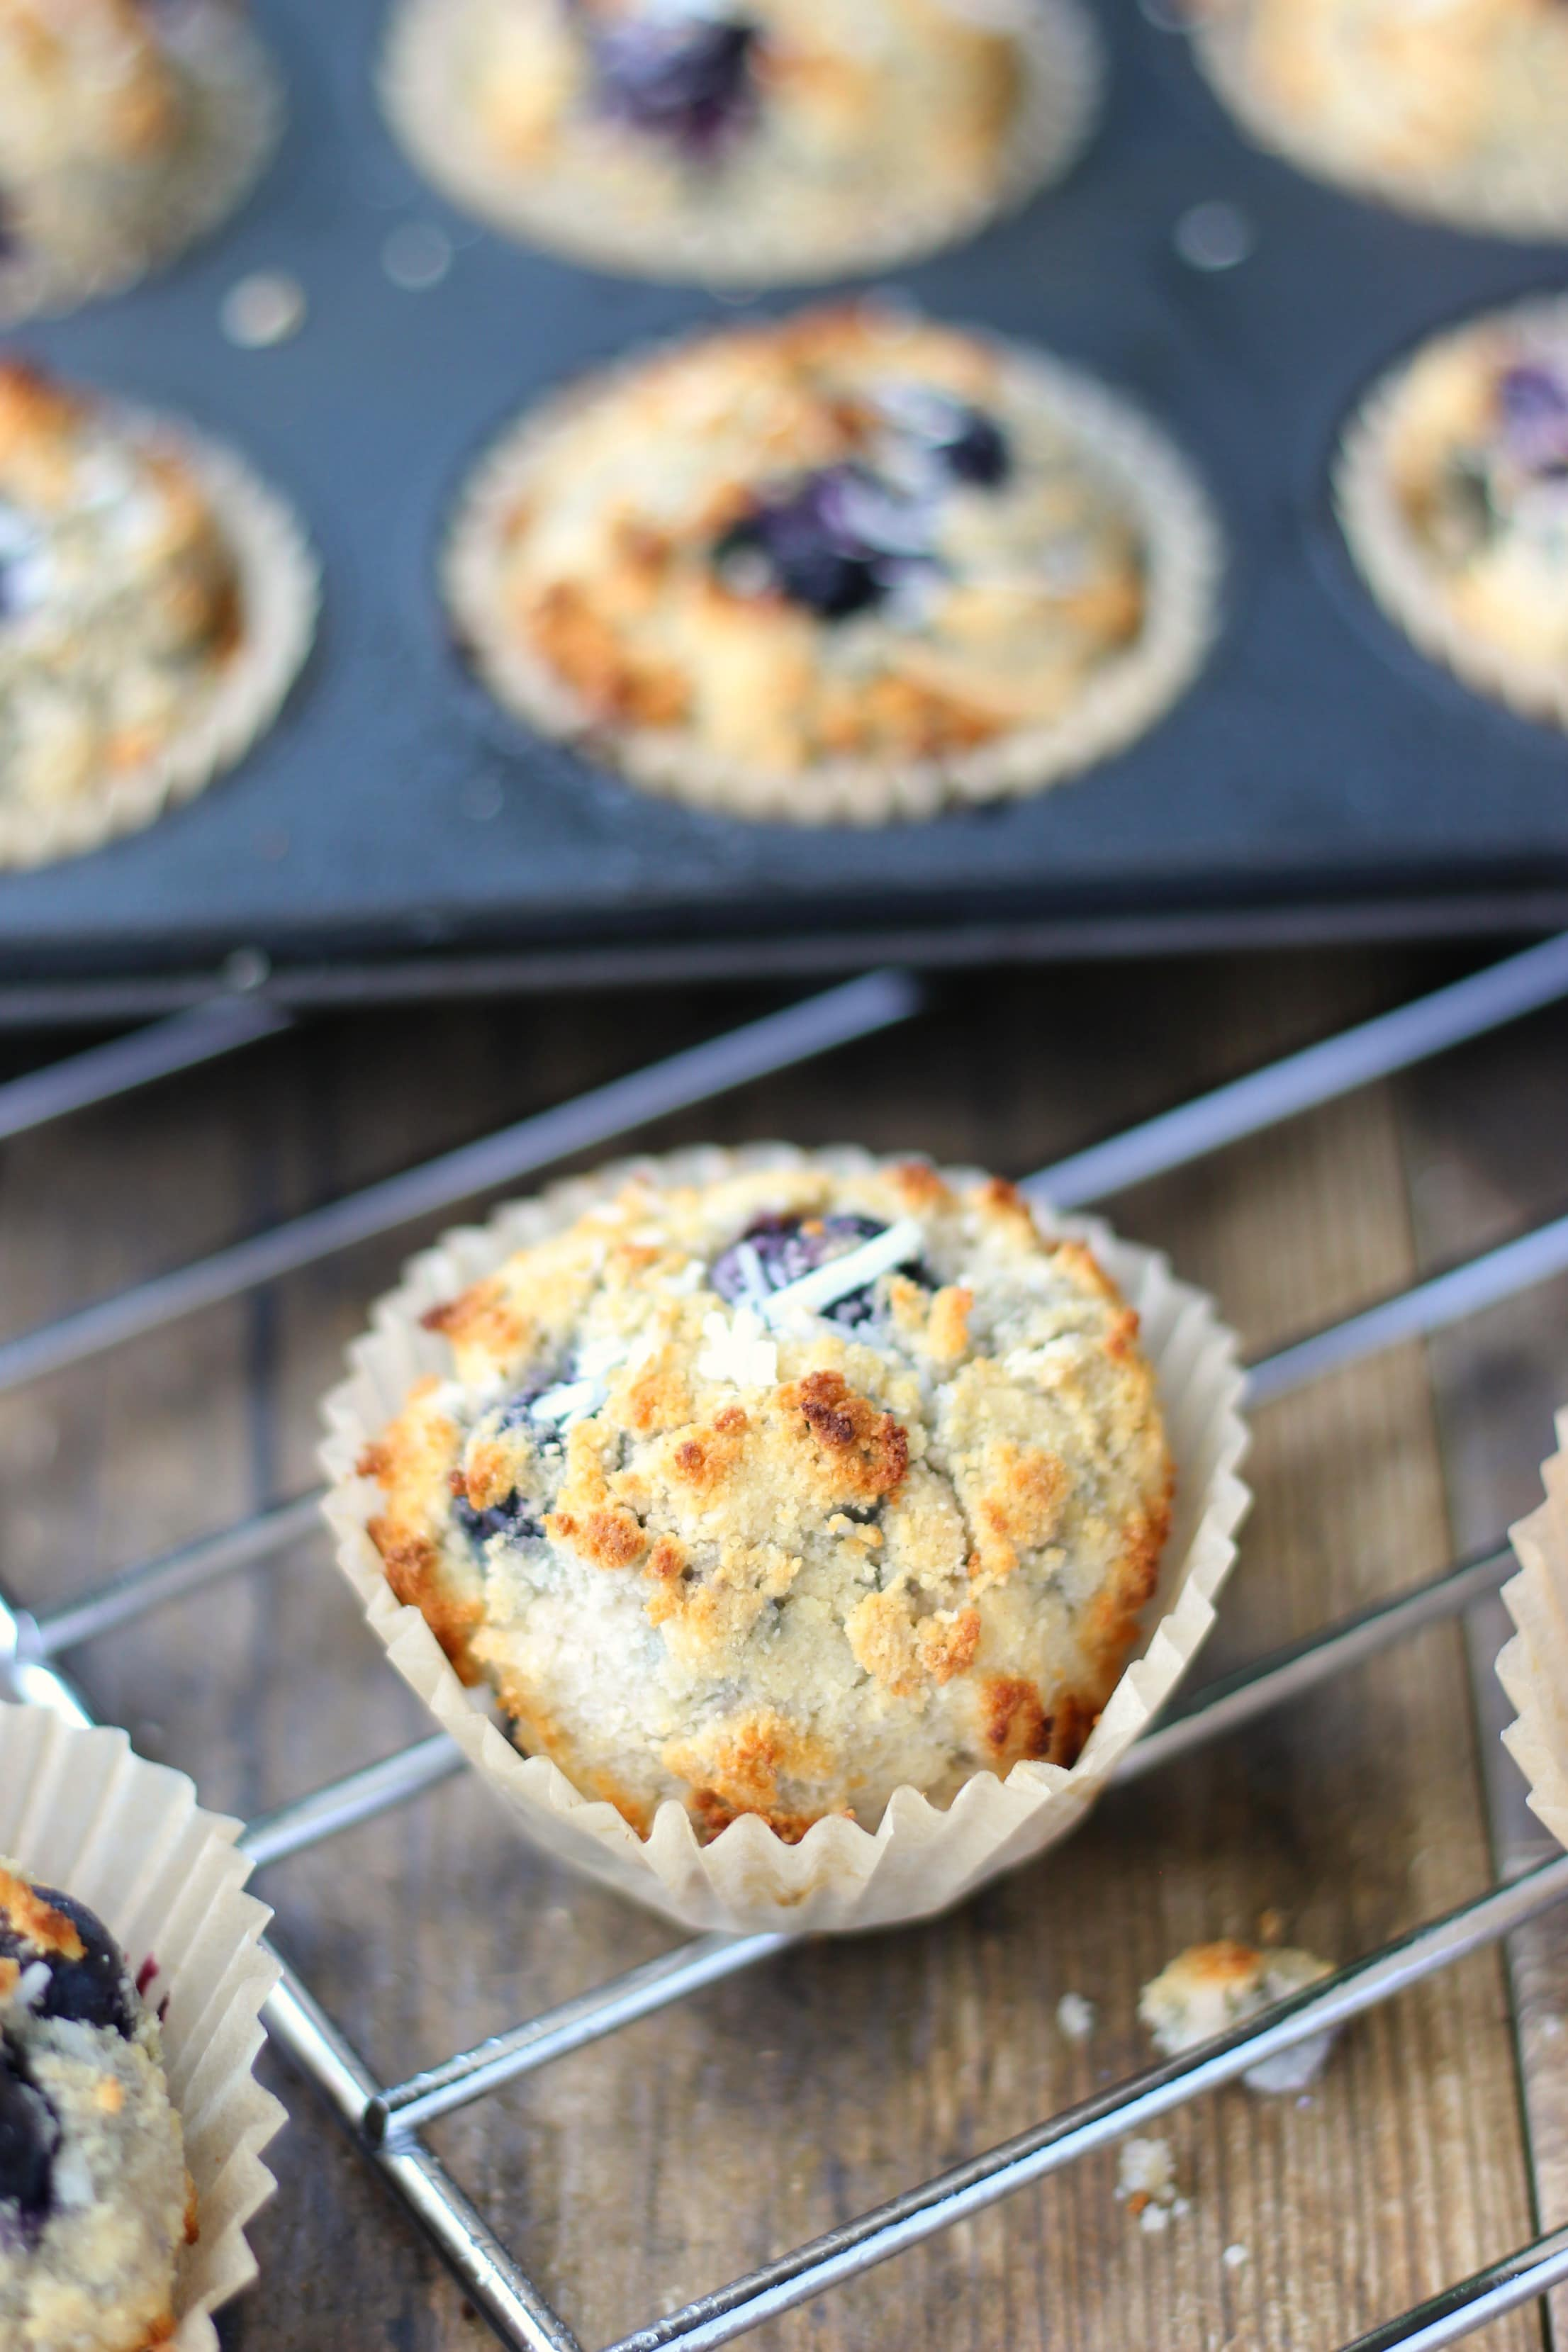 Now your morning experience just got a whole lot better with these delicious and quilt-free Coconut Blueberry Muffins. Enjoy!